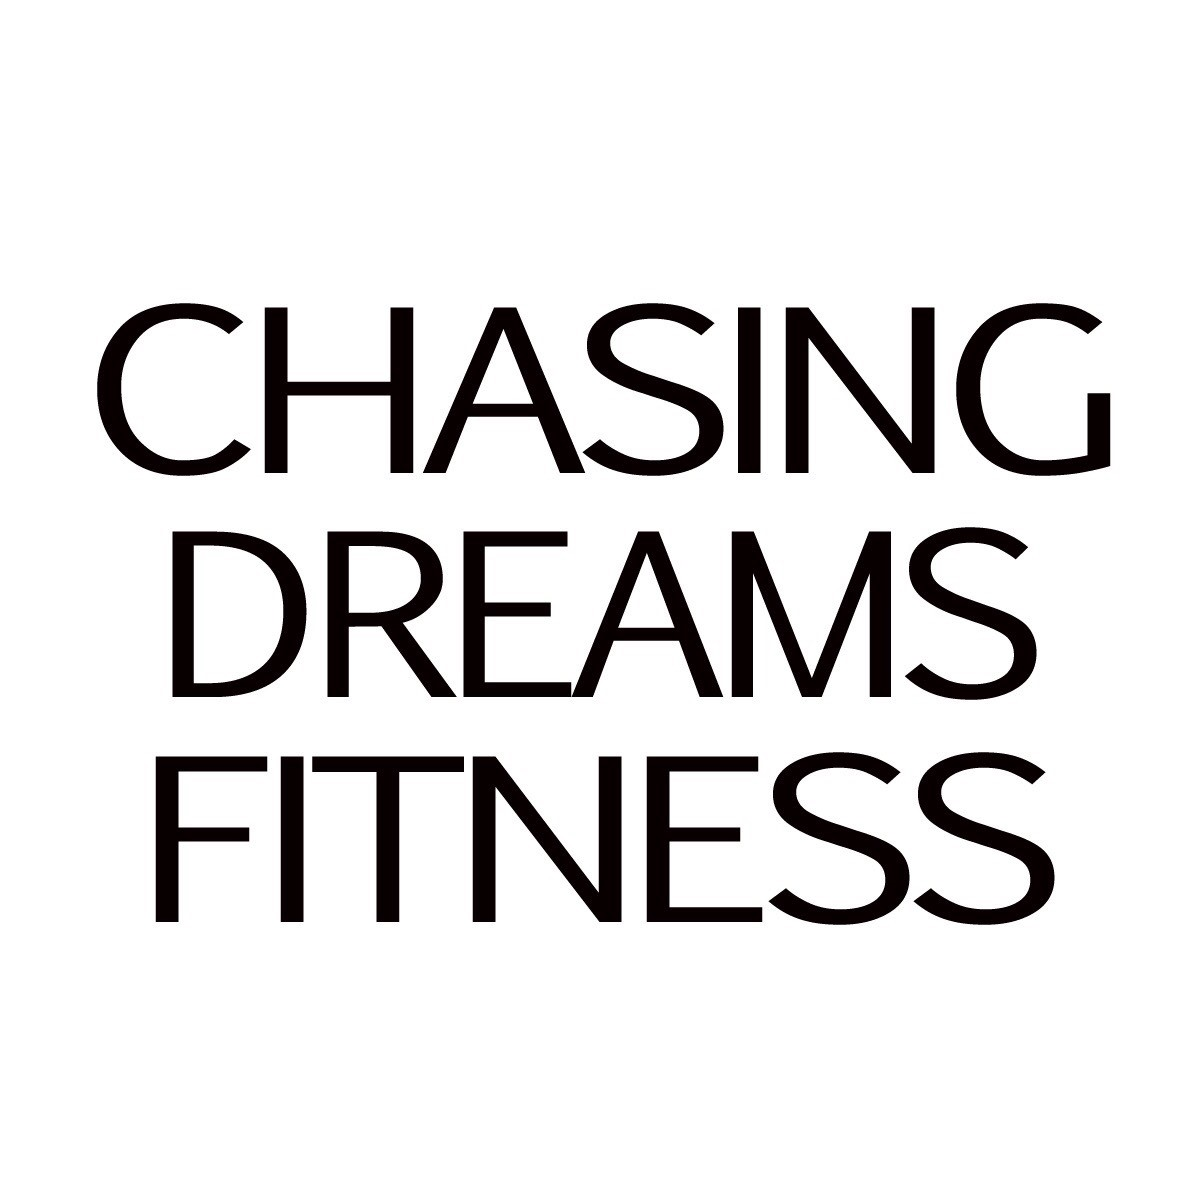 Chasing Dreams Fitness